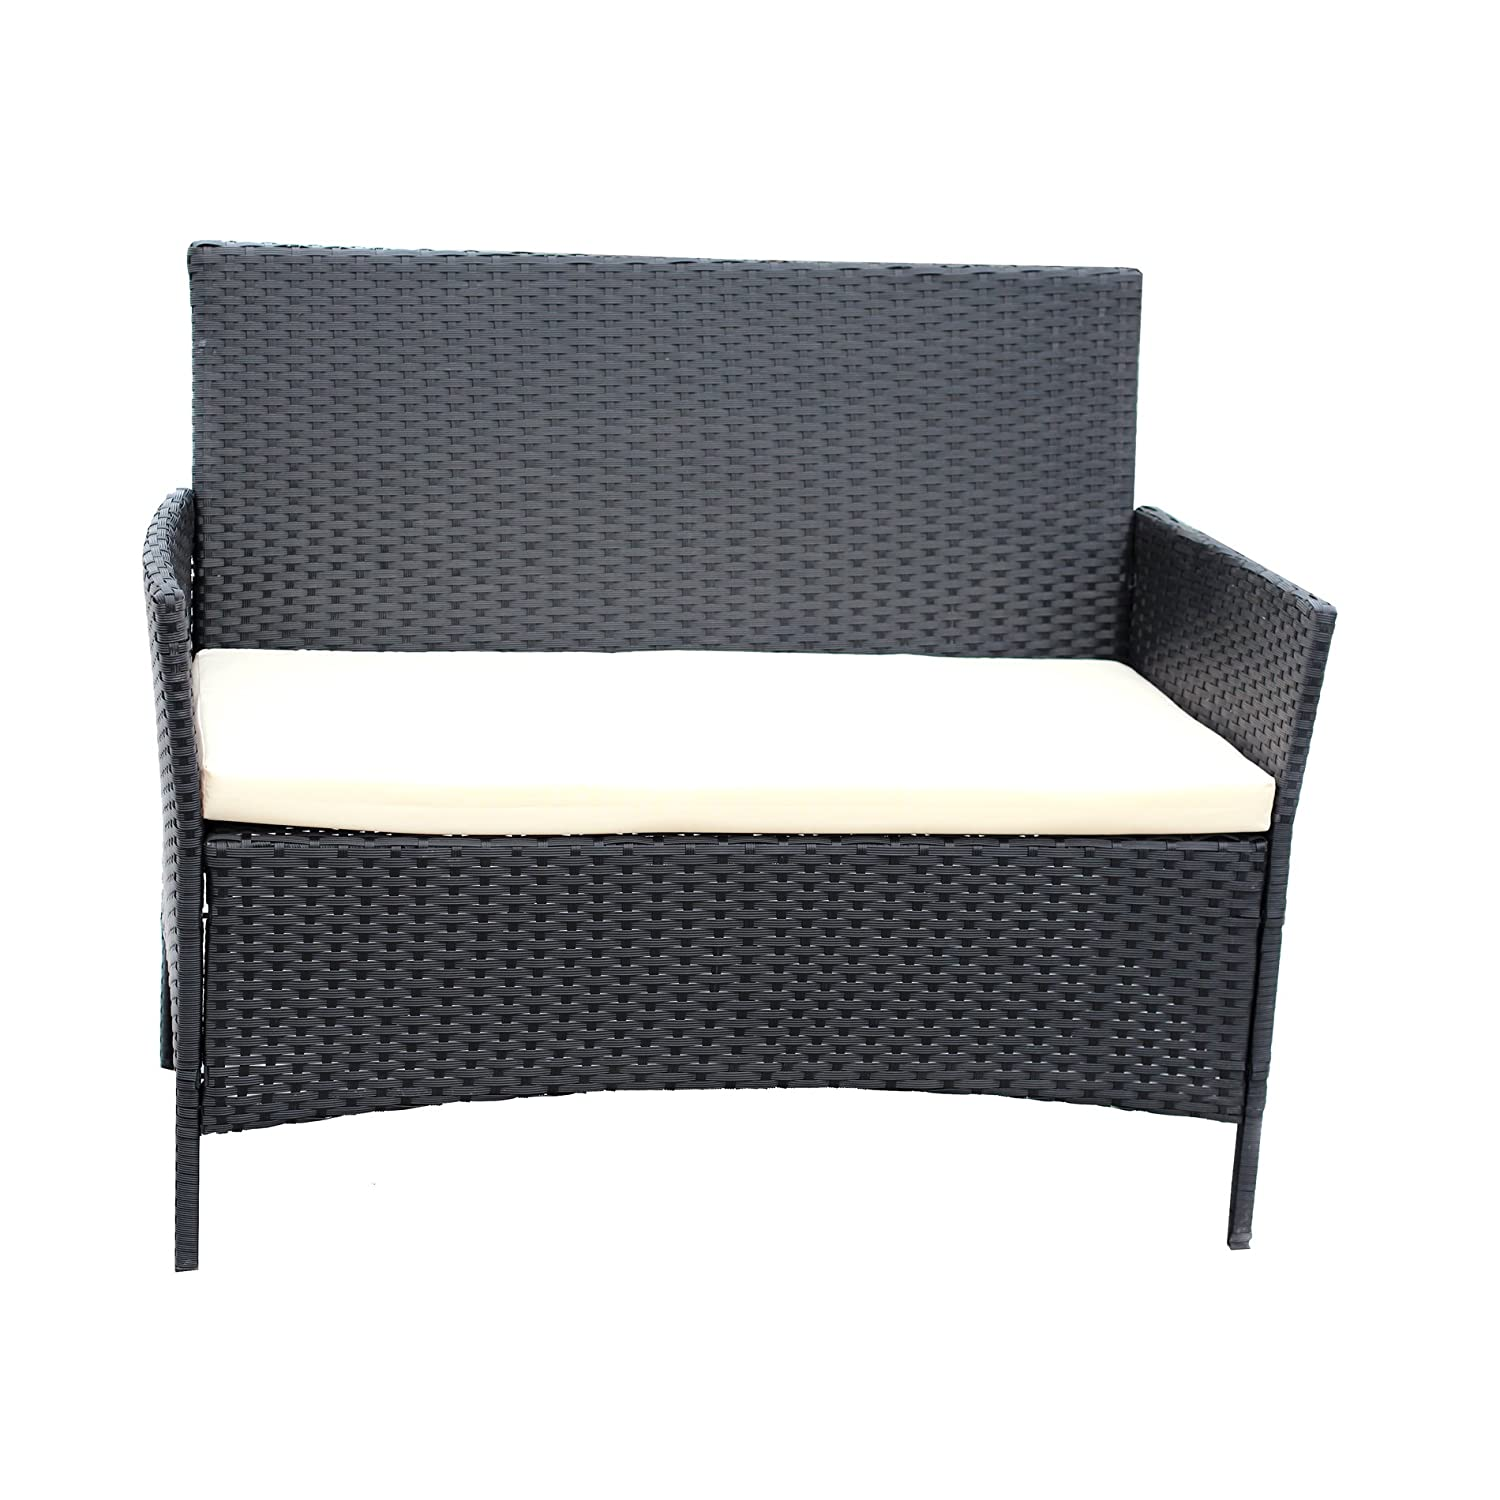 Rattan Table Set Part - 41: Amazon.com : Patio Furniture Set Clearance Rattan Wicker Dining Table Chair  Indoor Outdoor Furniture Set Balcony Sofa Bench (Black) : Patio, Lawn U0026  Garden